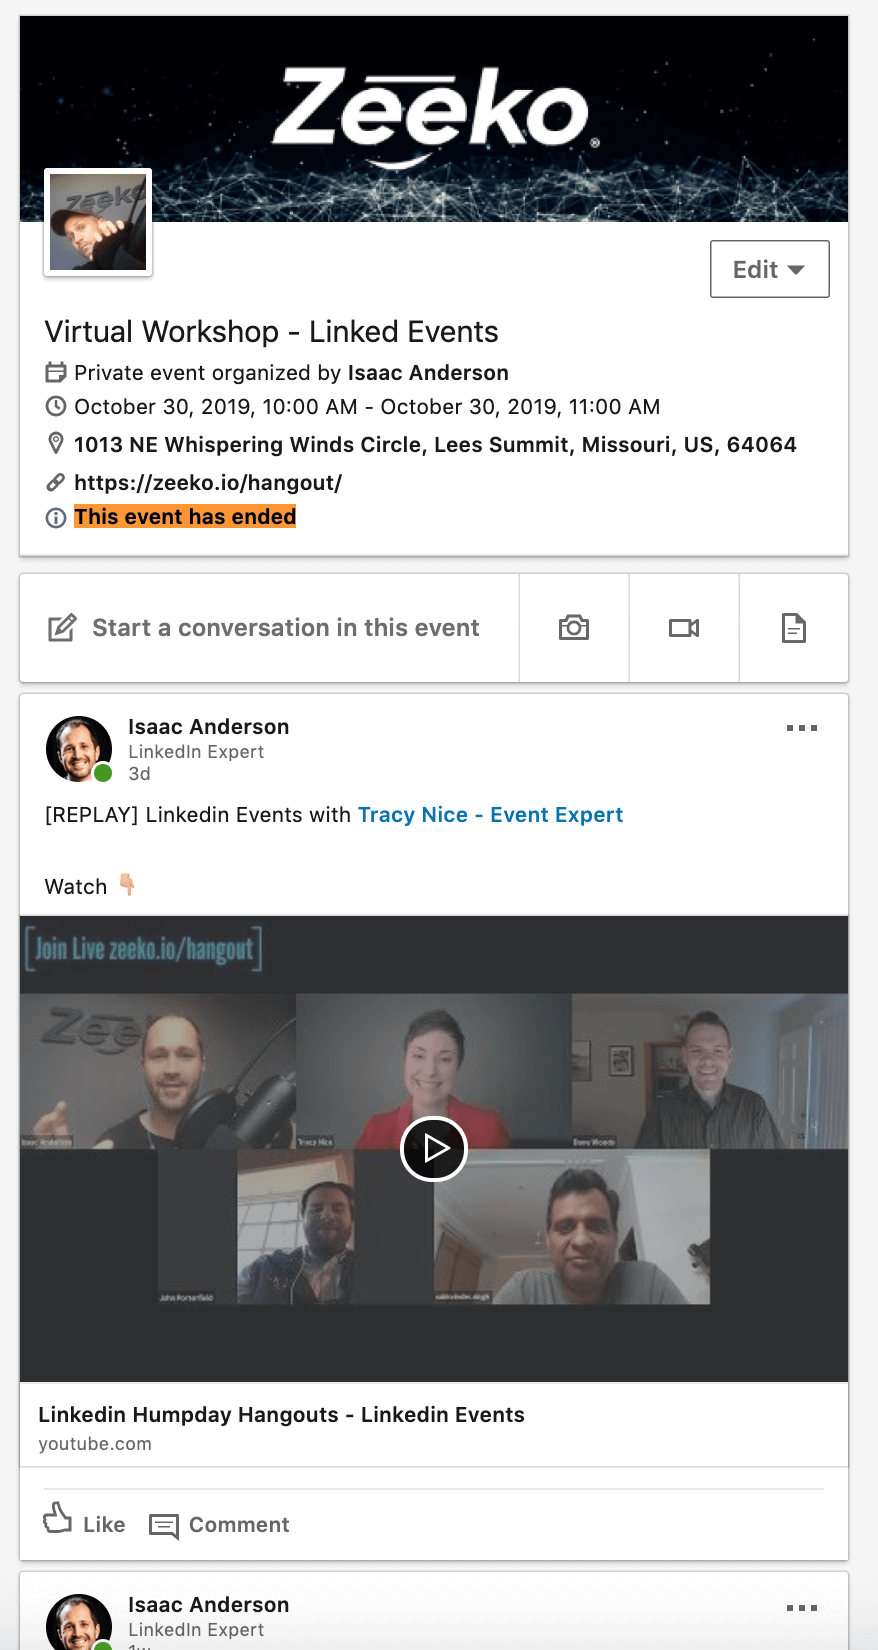 What happens after a Linkedin event expires - content still visible